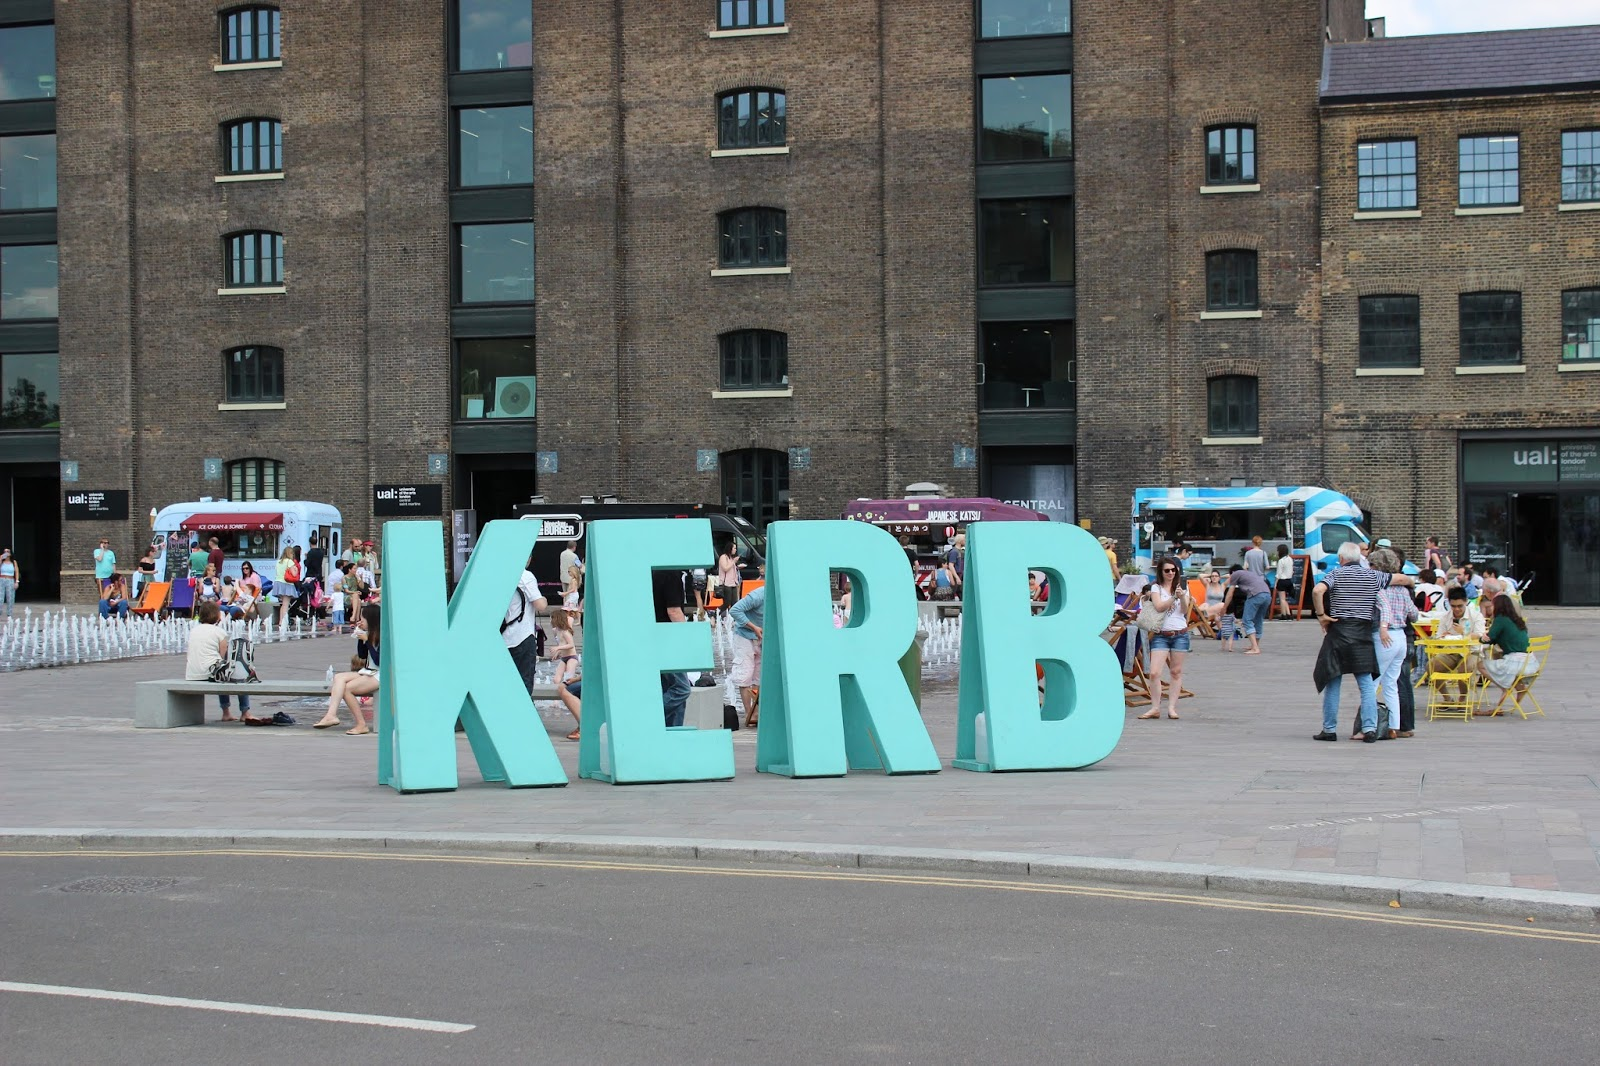 kerb food market sign